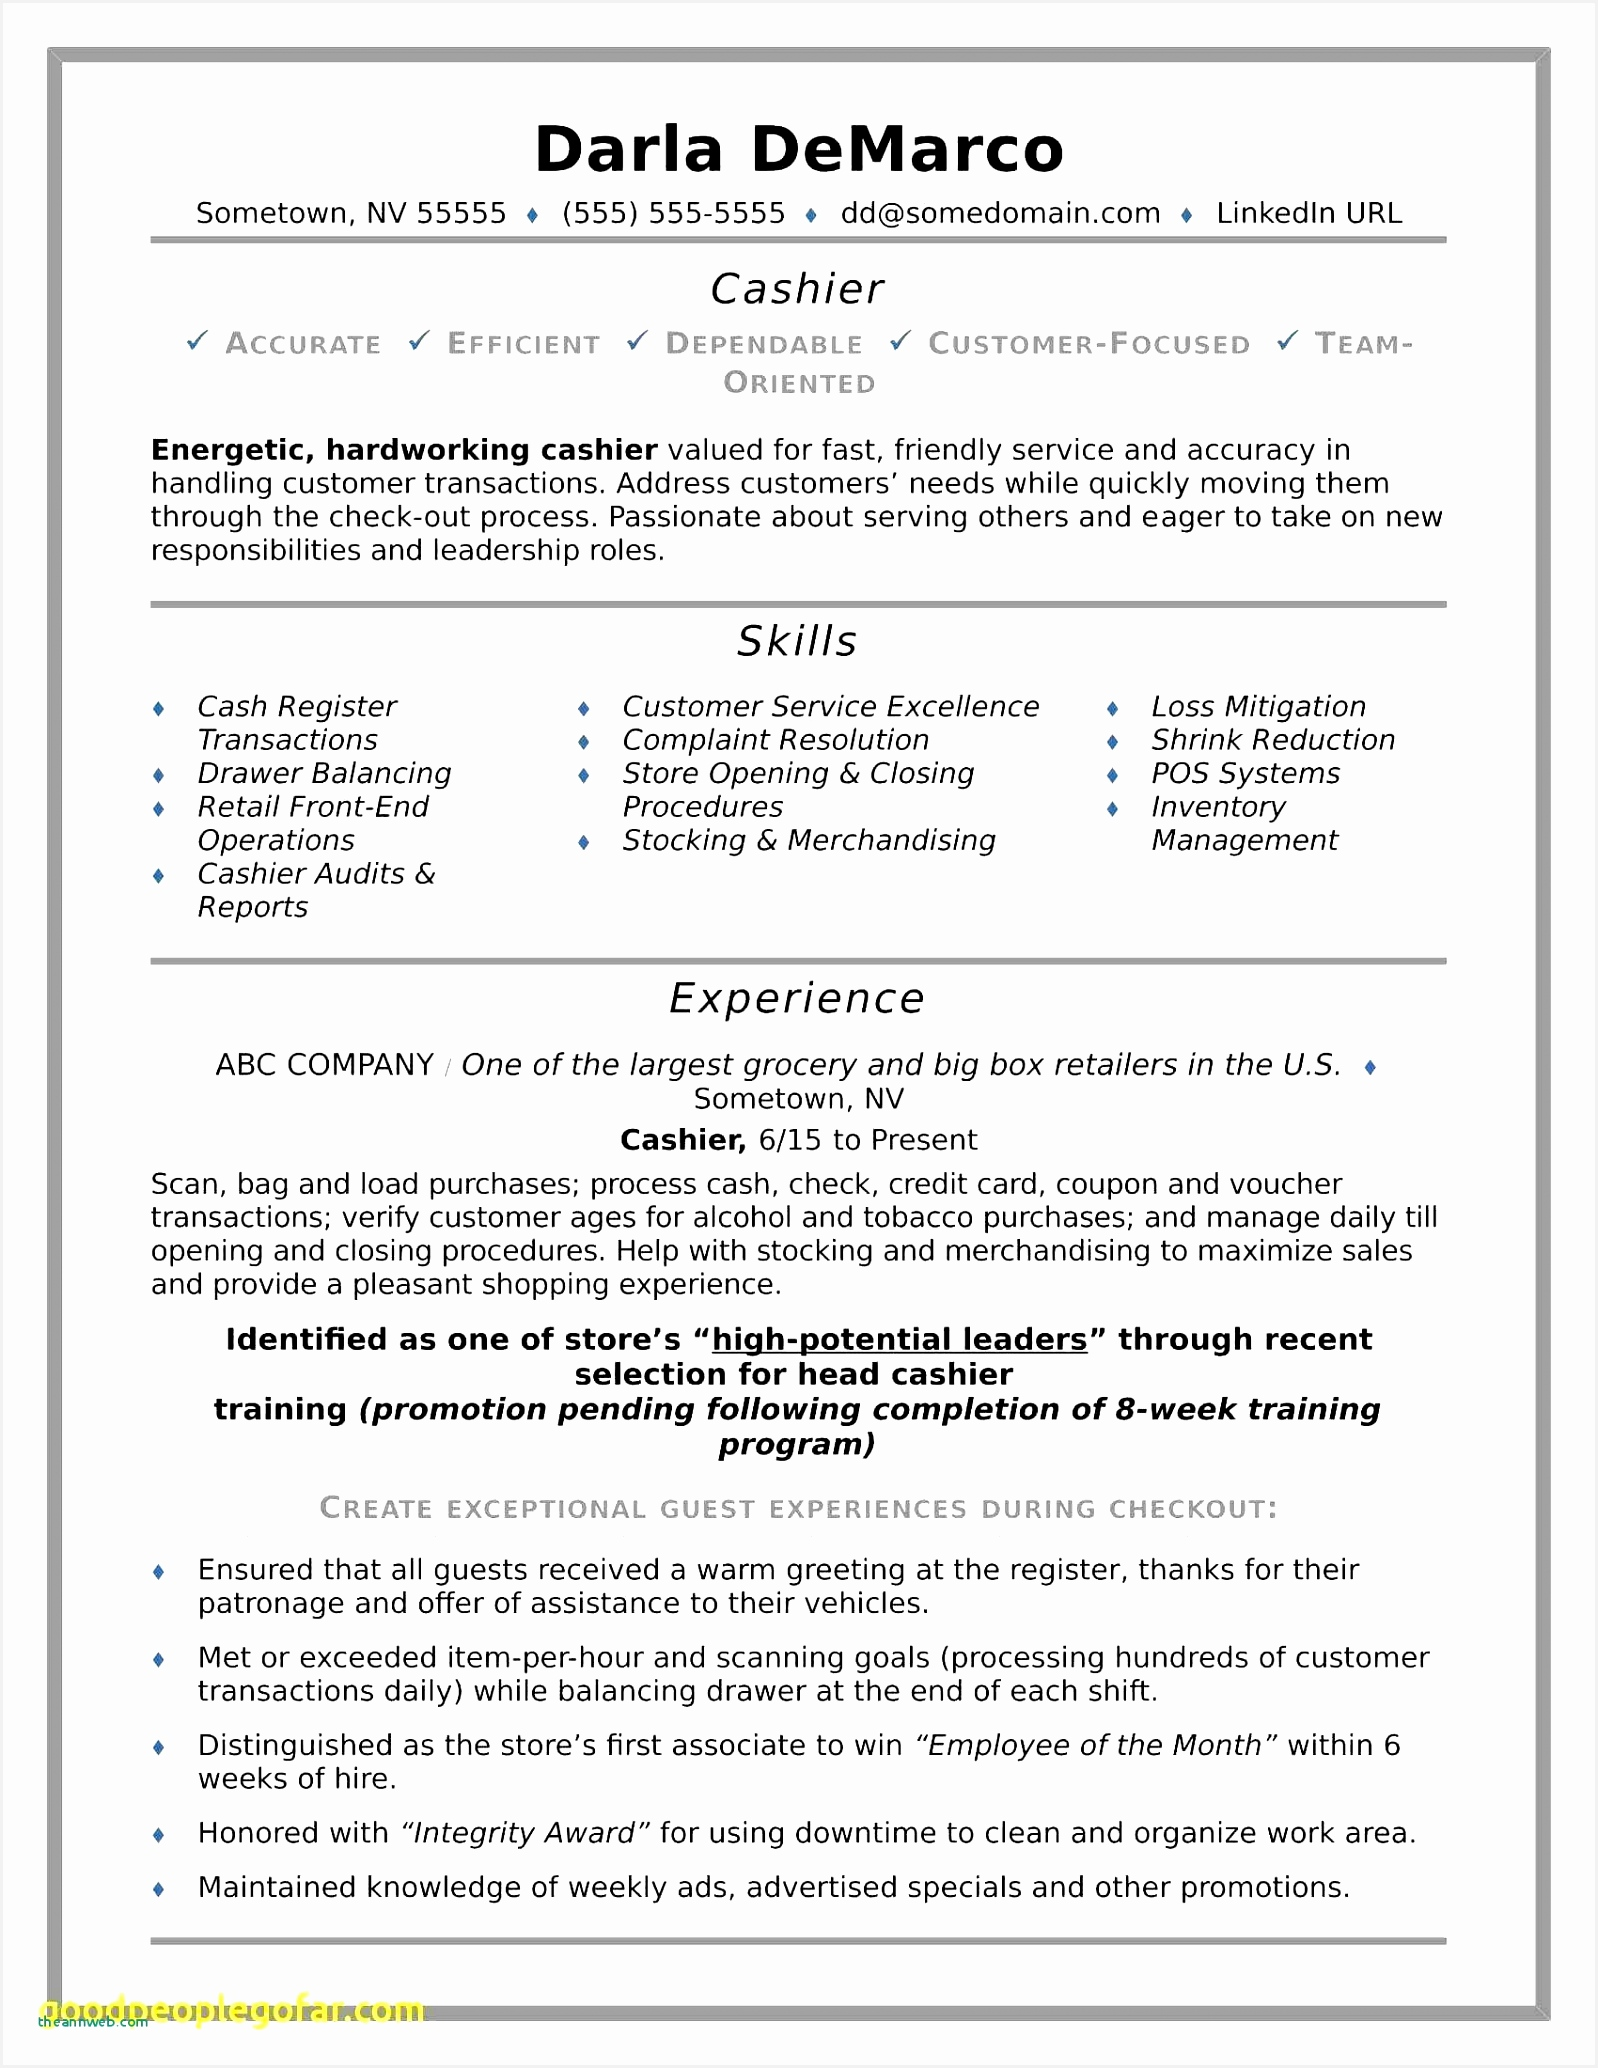 Application New Substitute Teacher Cover Resume for It Job Unique Easy Resume Template Simple Job Resume Examples Best Fresh Resume 0d 20681598znhdk